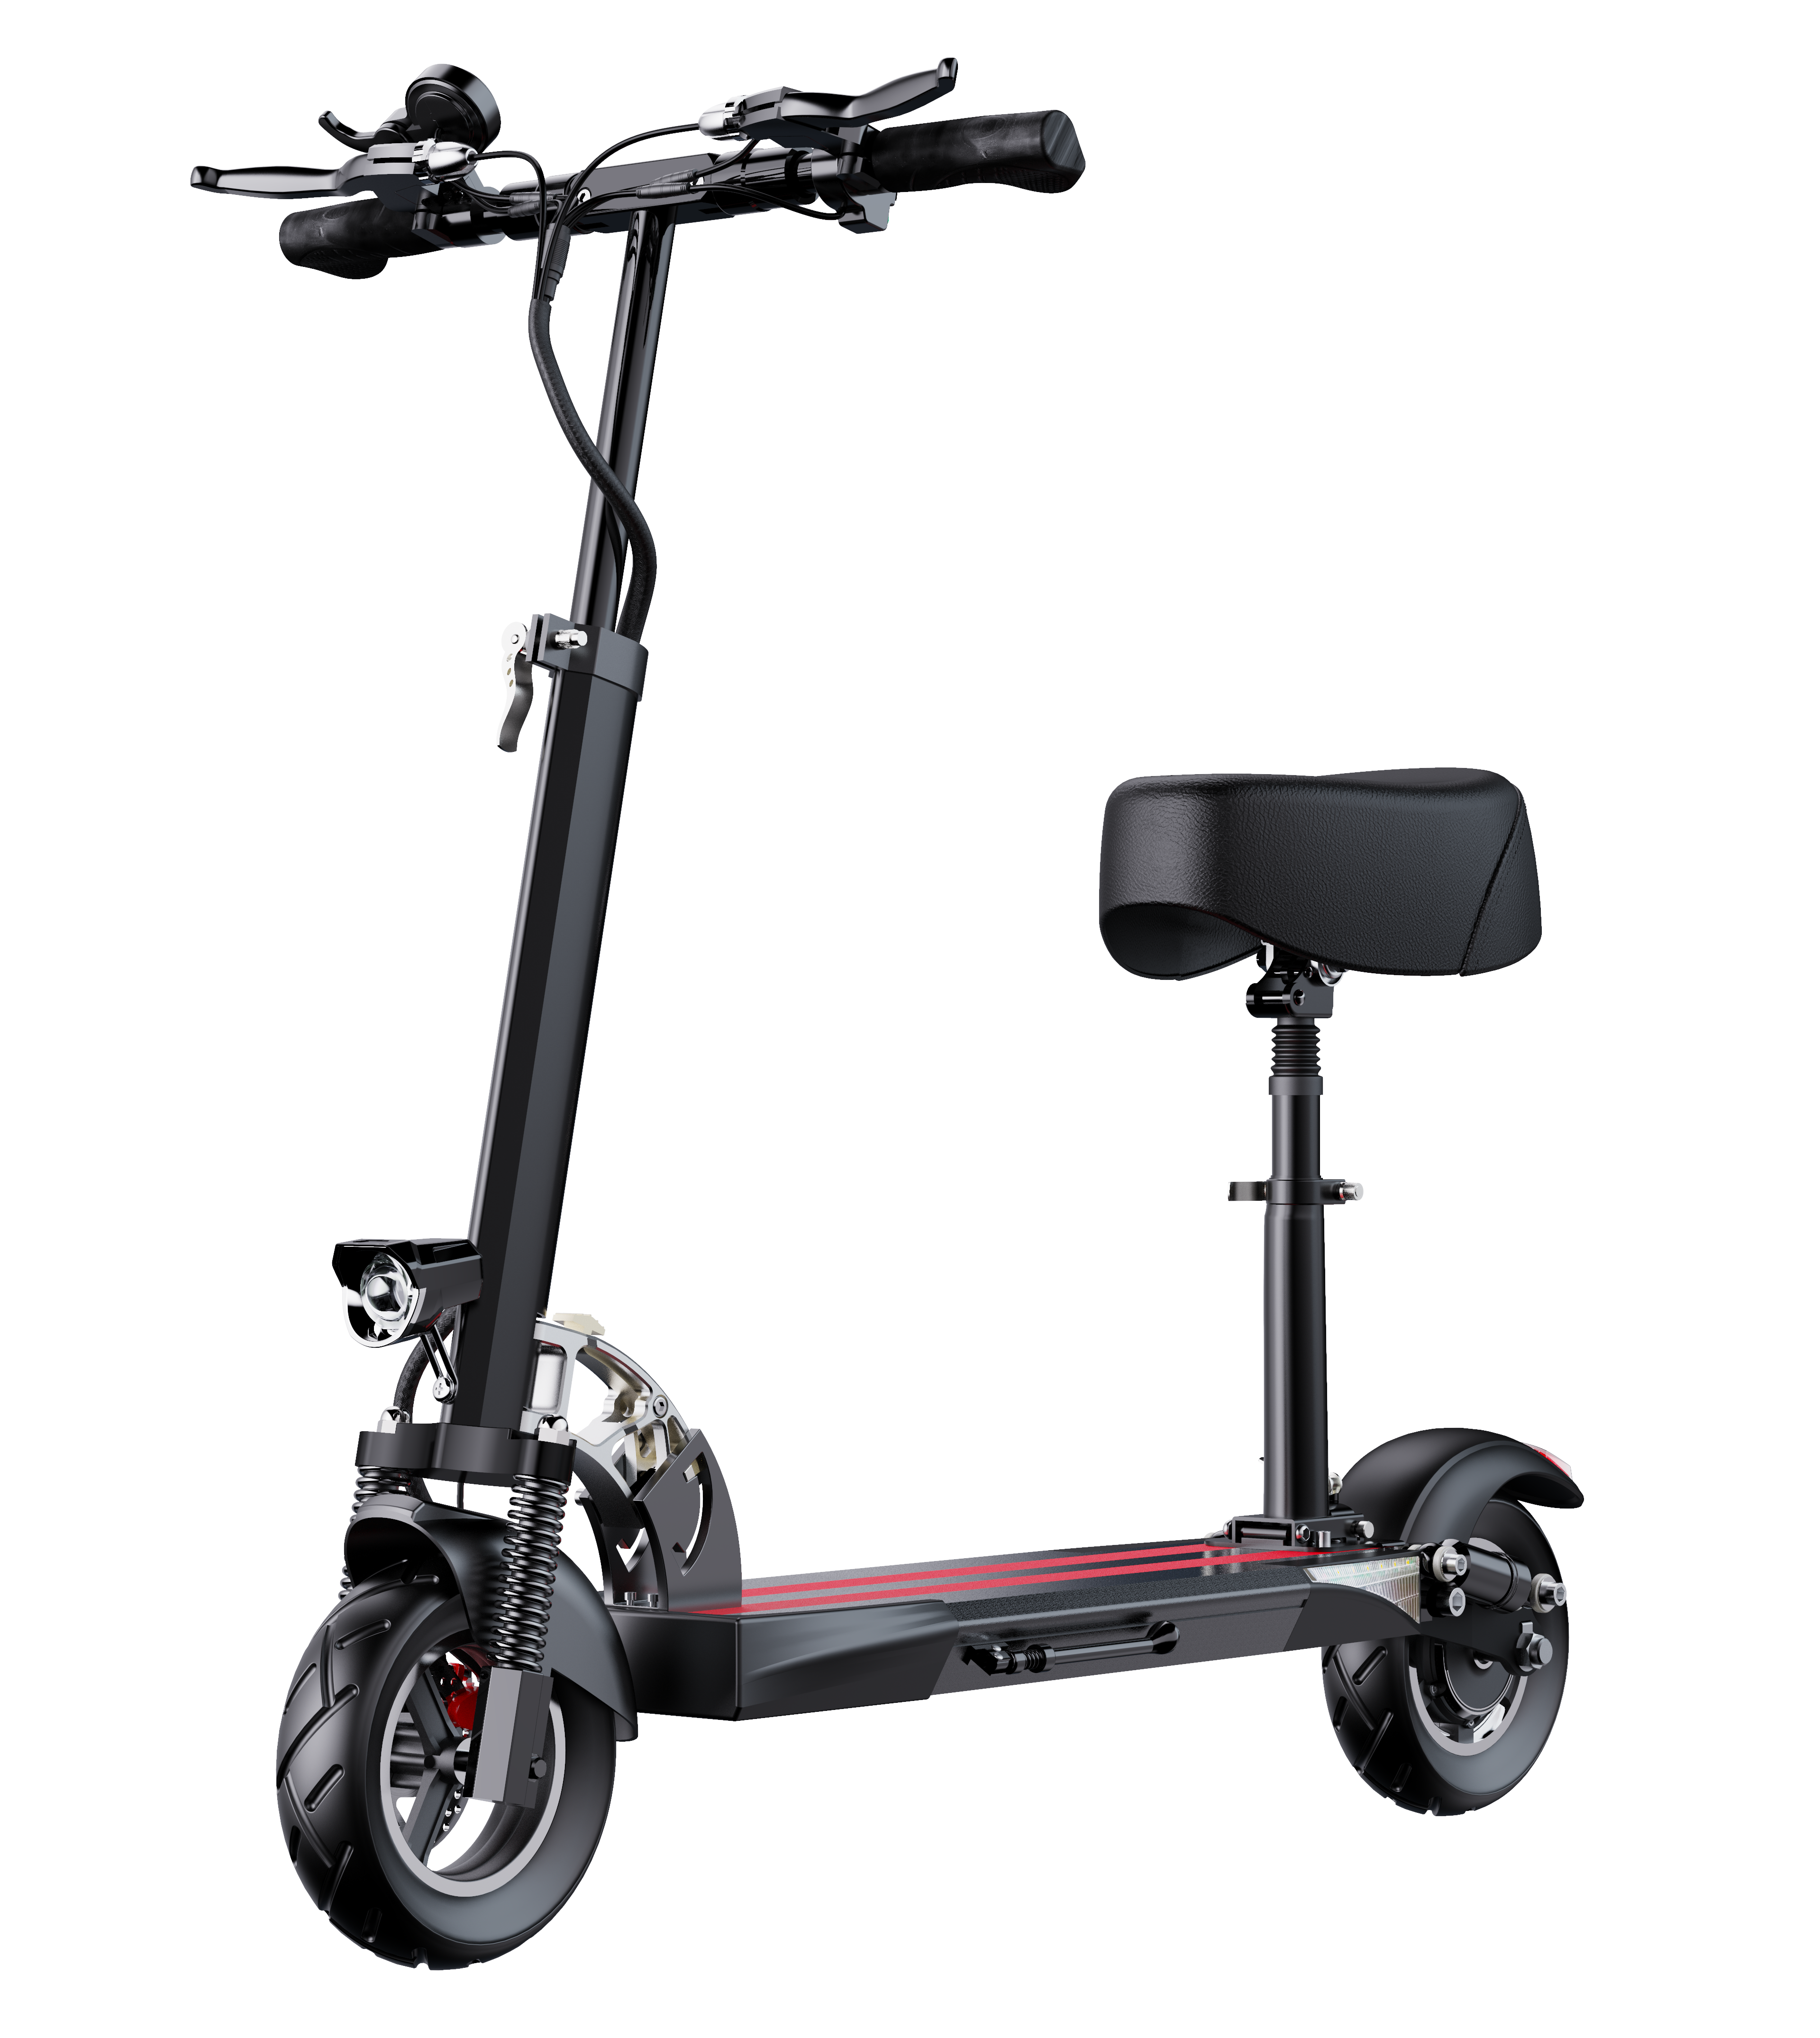 Telee Vehicle 48 Volt 13 AH 500w Vacuum Tyre Electric Kick Scooter/Escooter/f=Foldable e-scooter Electric Scooter for Adult